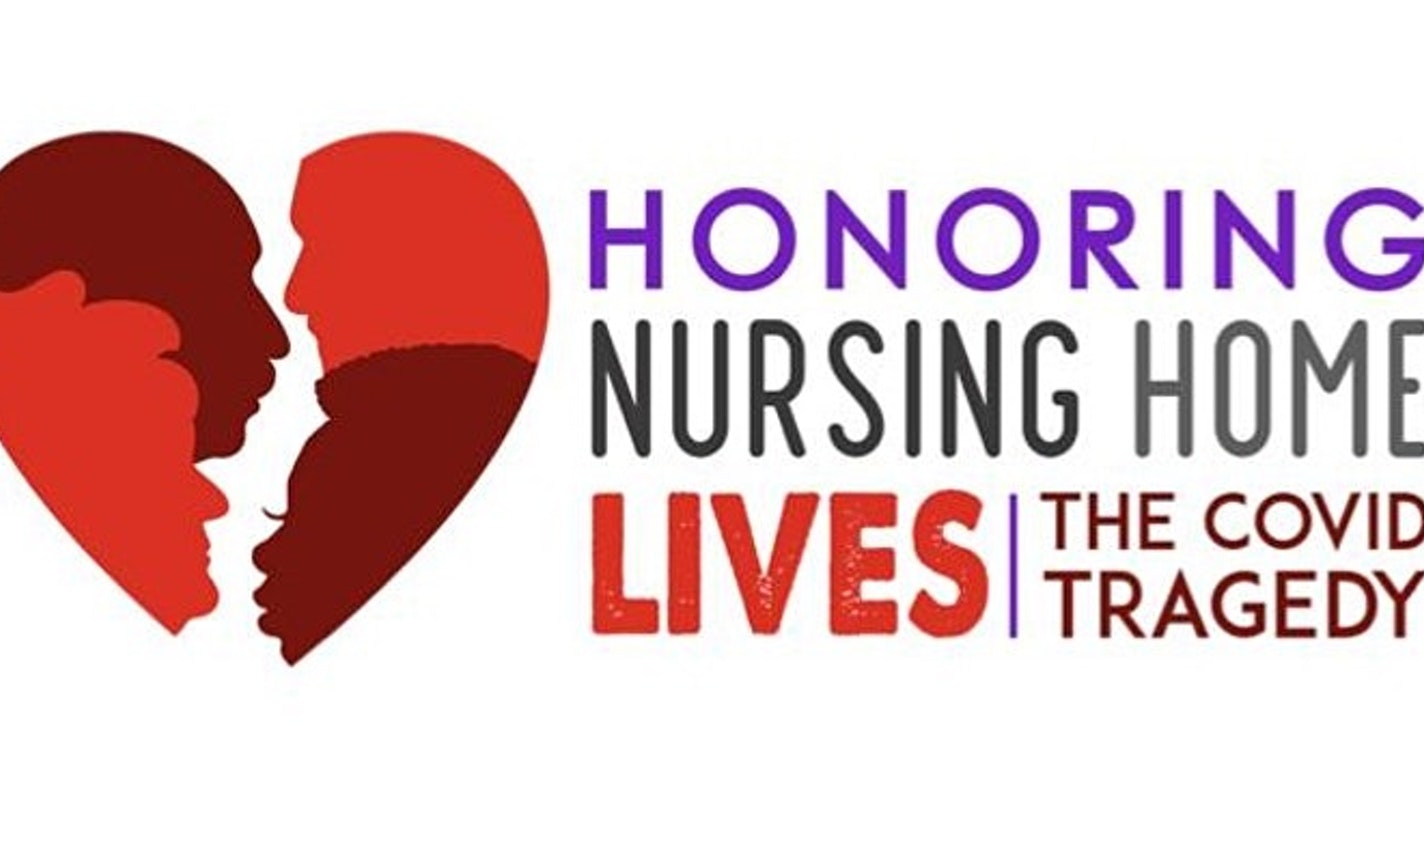 Day of Remembrance: Honoring Nursing Home Lives Lost